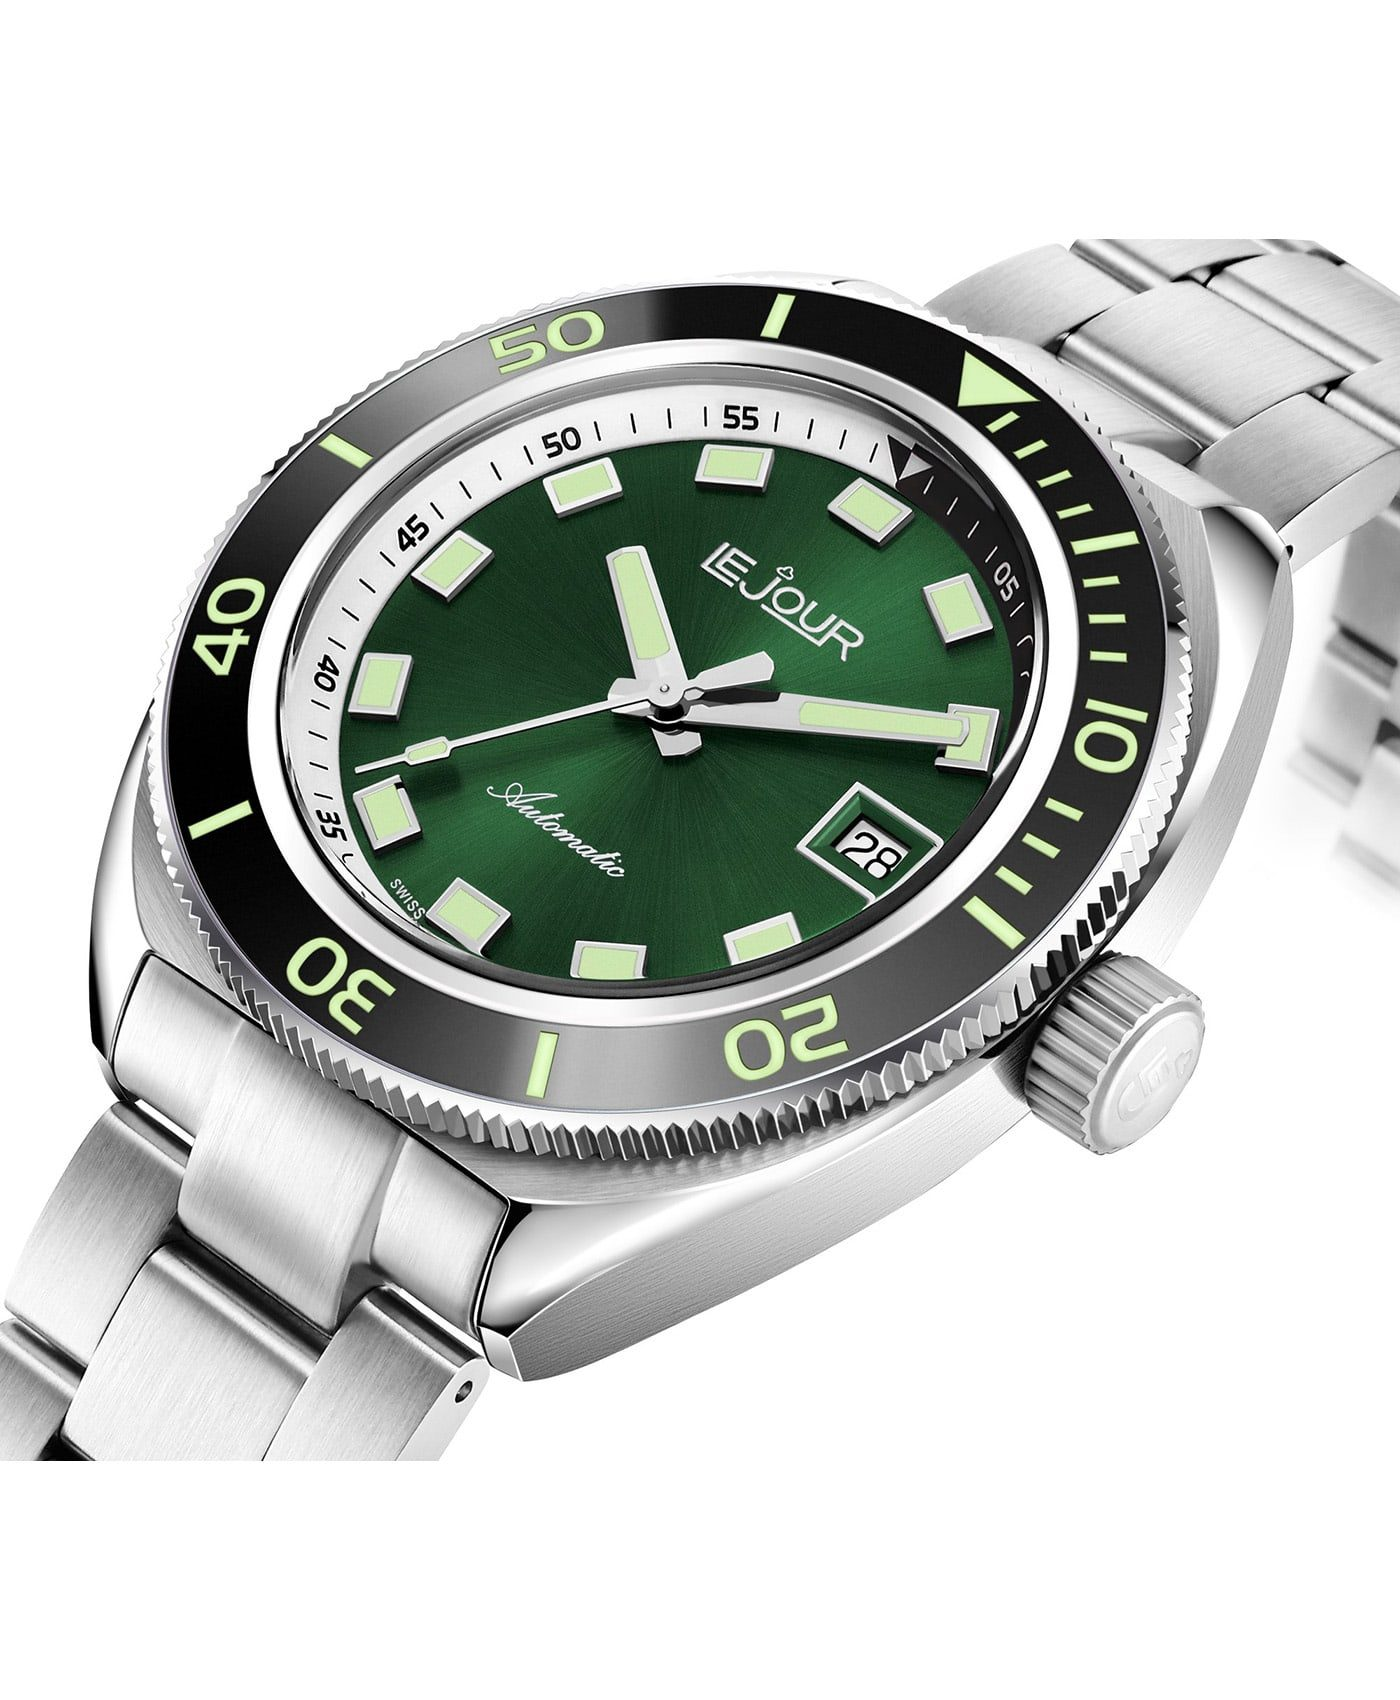 LeJour Hammerhead dive watch HH-004 side case